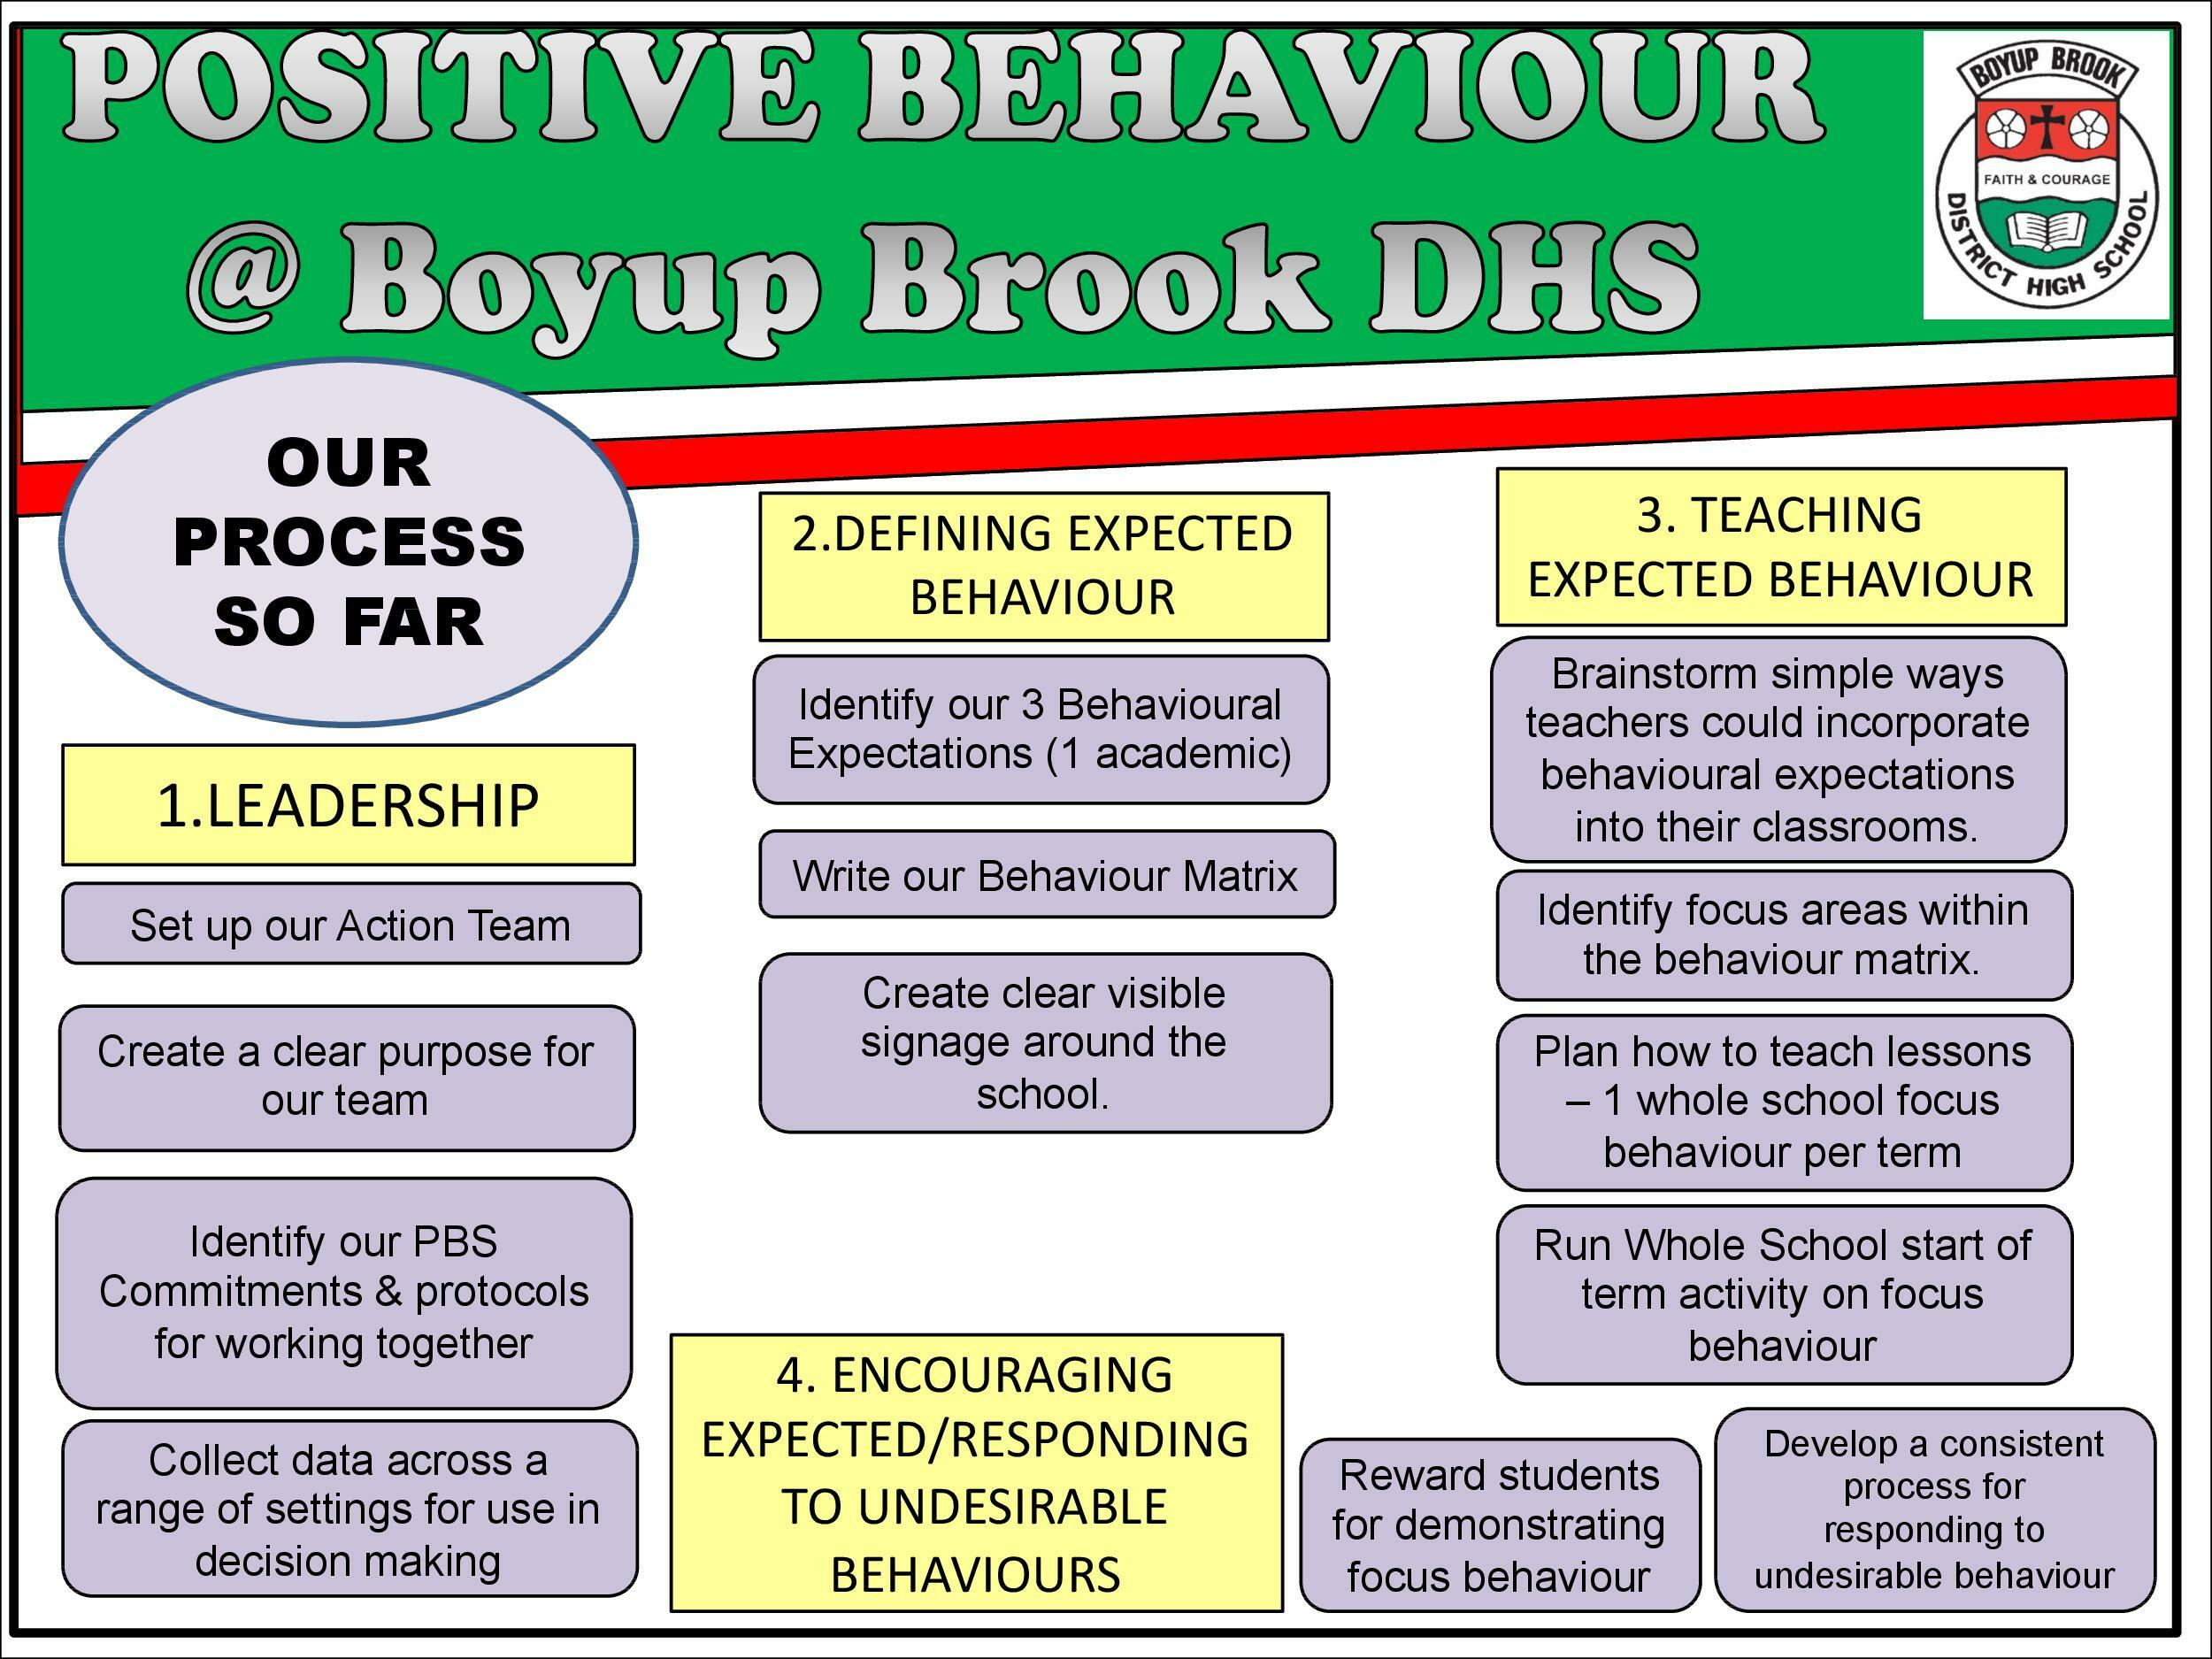 Positive Behaviour Support Page 3